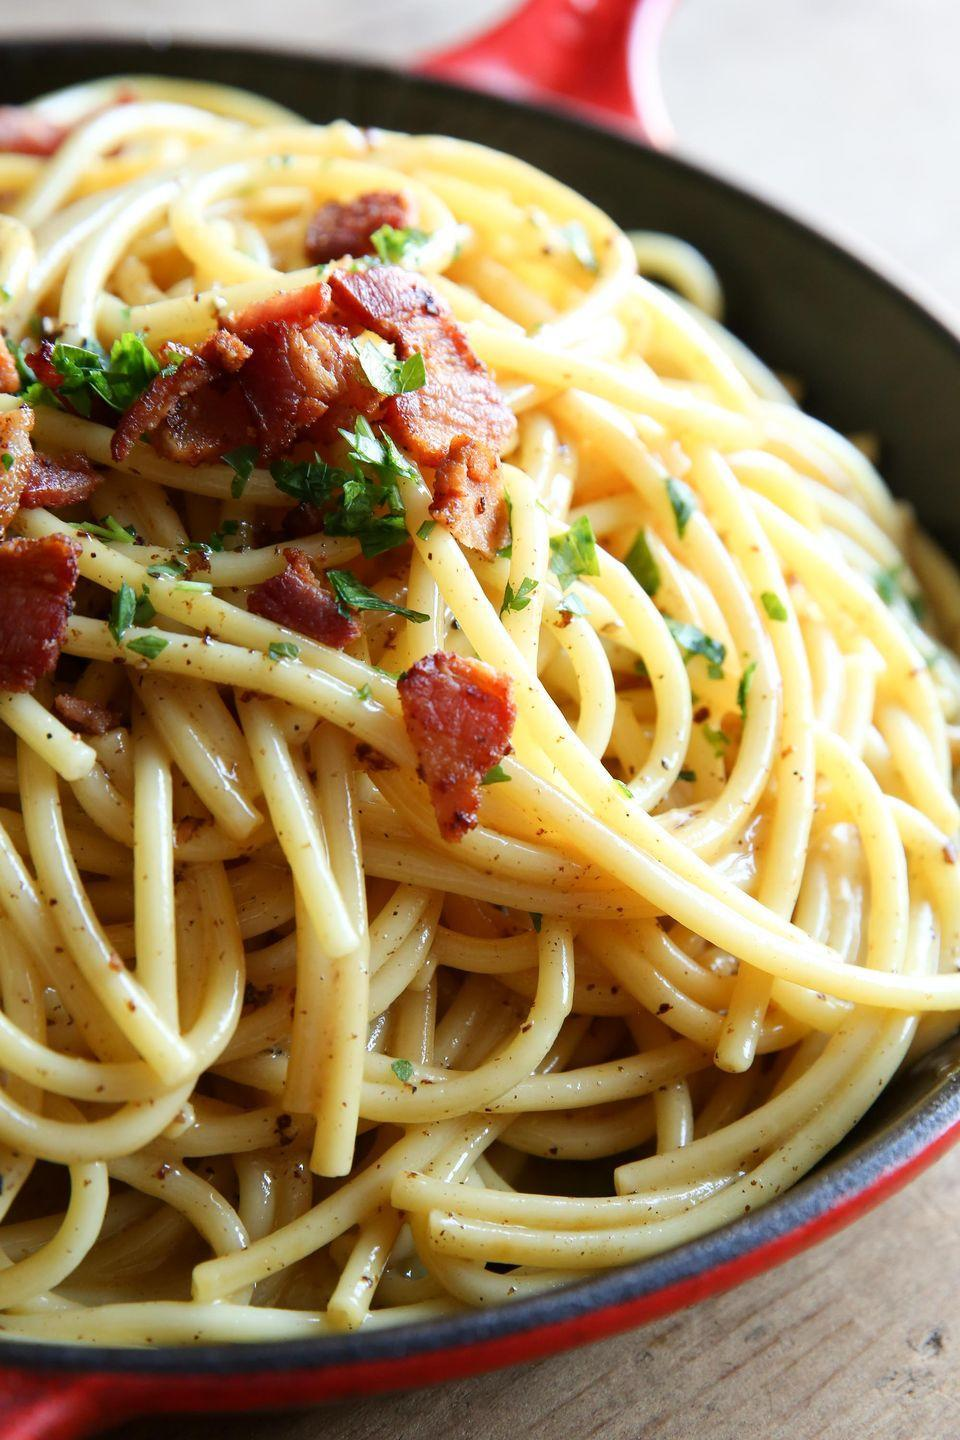 """<p>White cheddar is here to blow your mind.</p><p>Get the recipe from <a href=""""https://www.delish.com/cooking/recipe-ideas/recipes/a51162/cheddar-carbonara-recipe/"""" rel=""""nofollow noopener"""" target=""""_blank"""" data-ylk=""""slk:Delish"""" class=""""link rapid-noclick-resp"""">Delish</a>.</p>"""